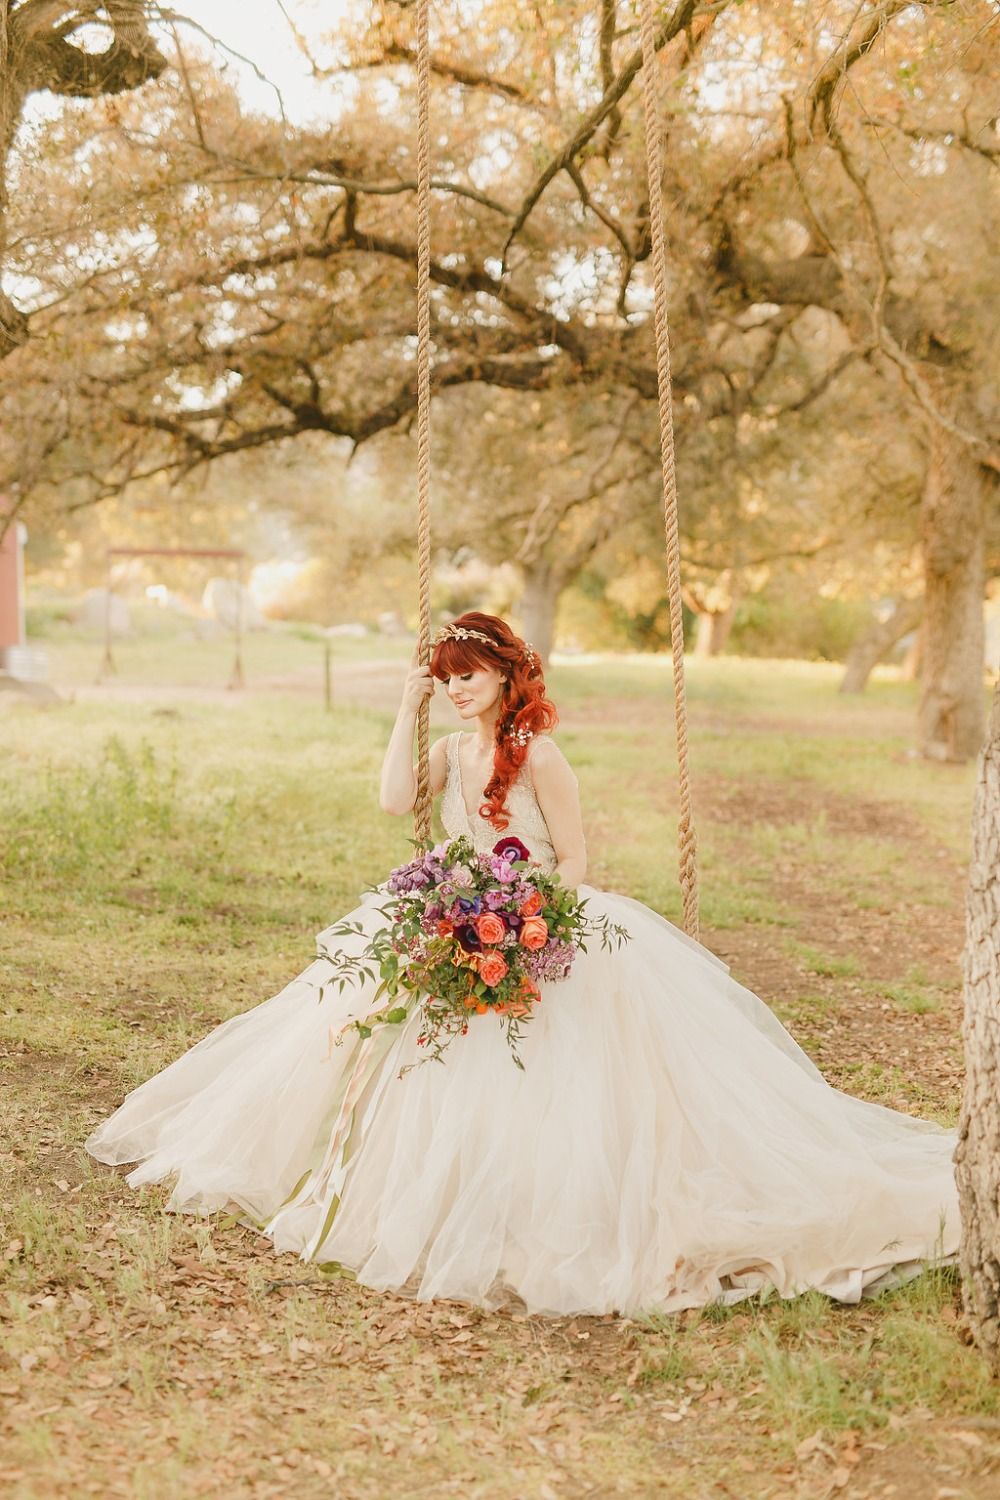 Floral Fairytale Shoot at Heavenly Oaks Flower Farm Bride on Swing